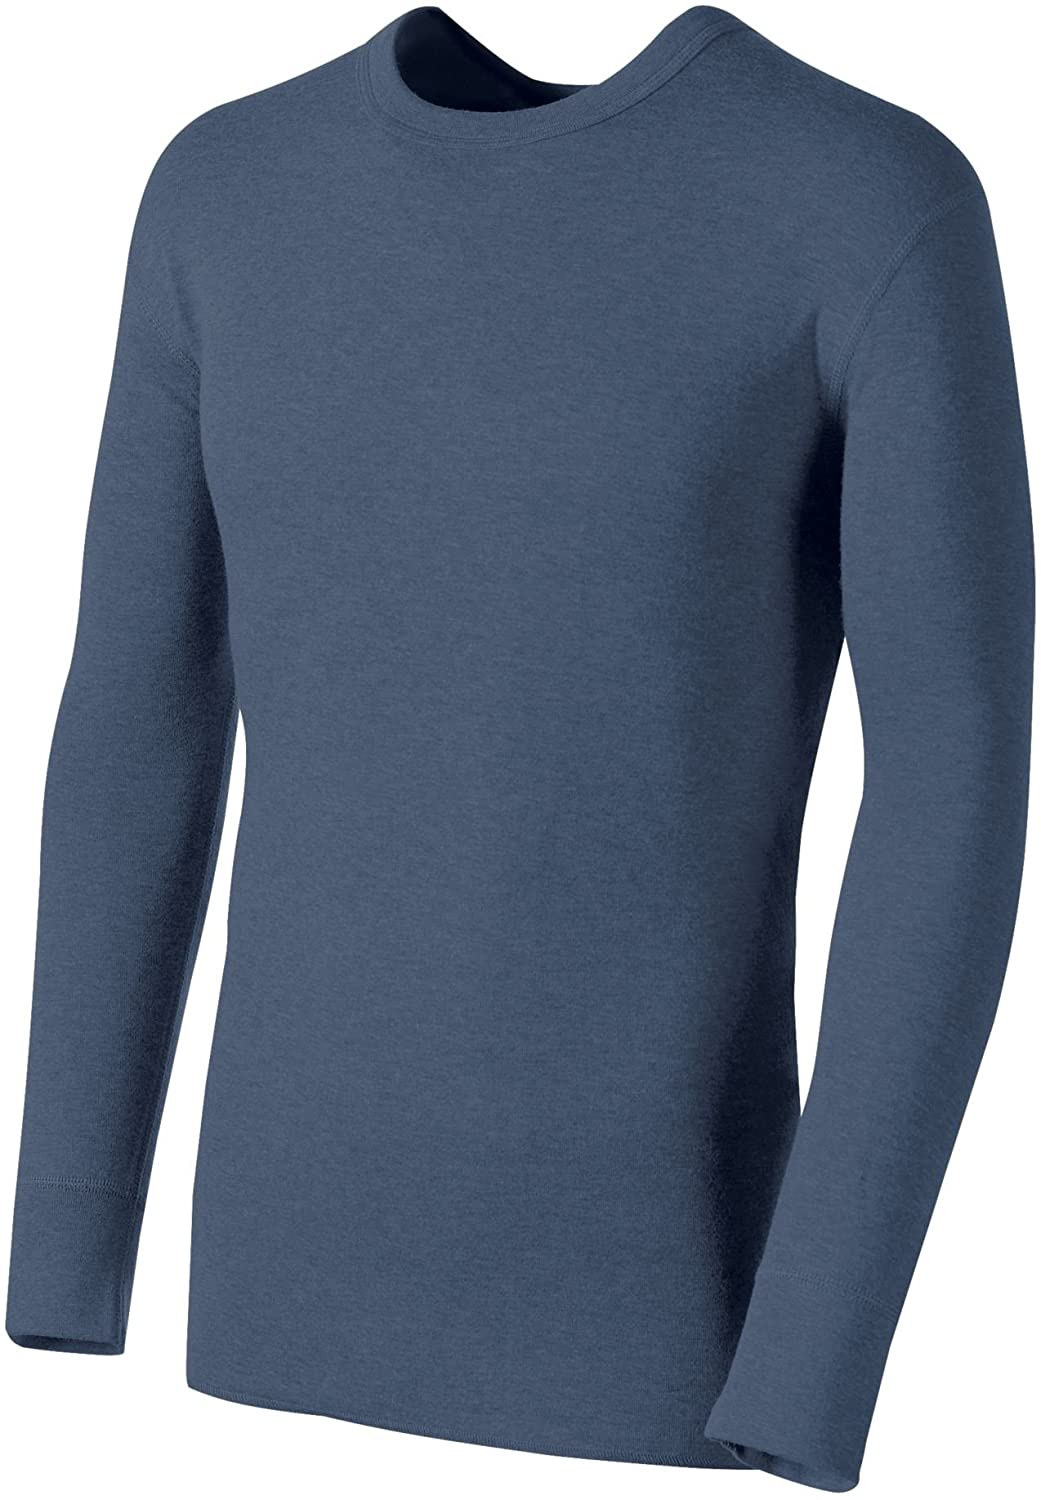 Duofold Men's Free shipping on posting reviews Mid Weight Thermal Neck High order Crew Sleepwear